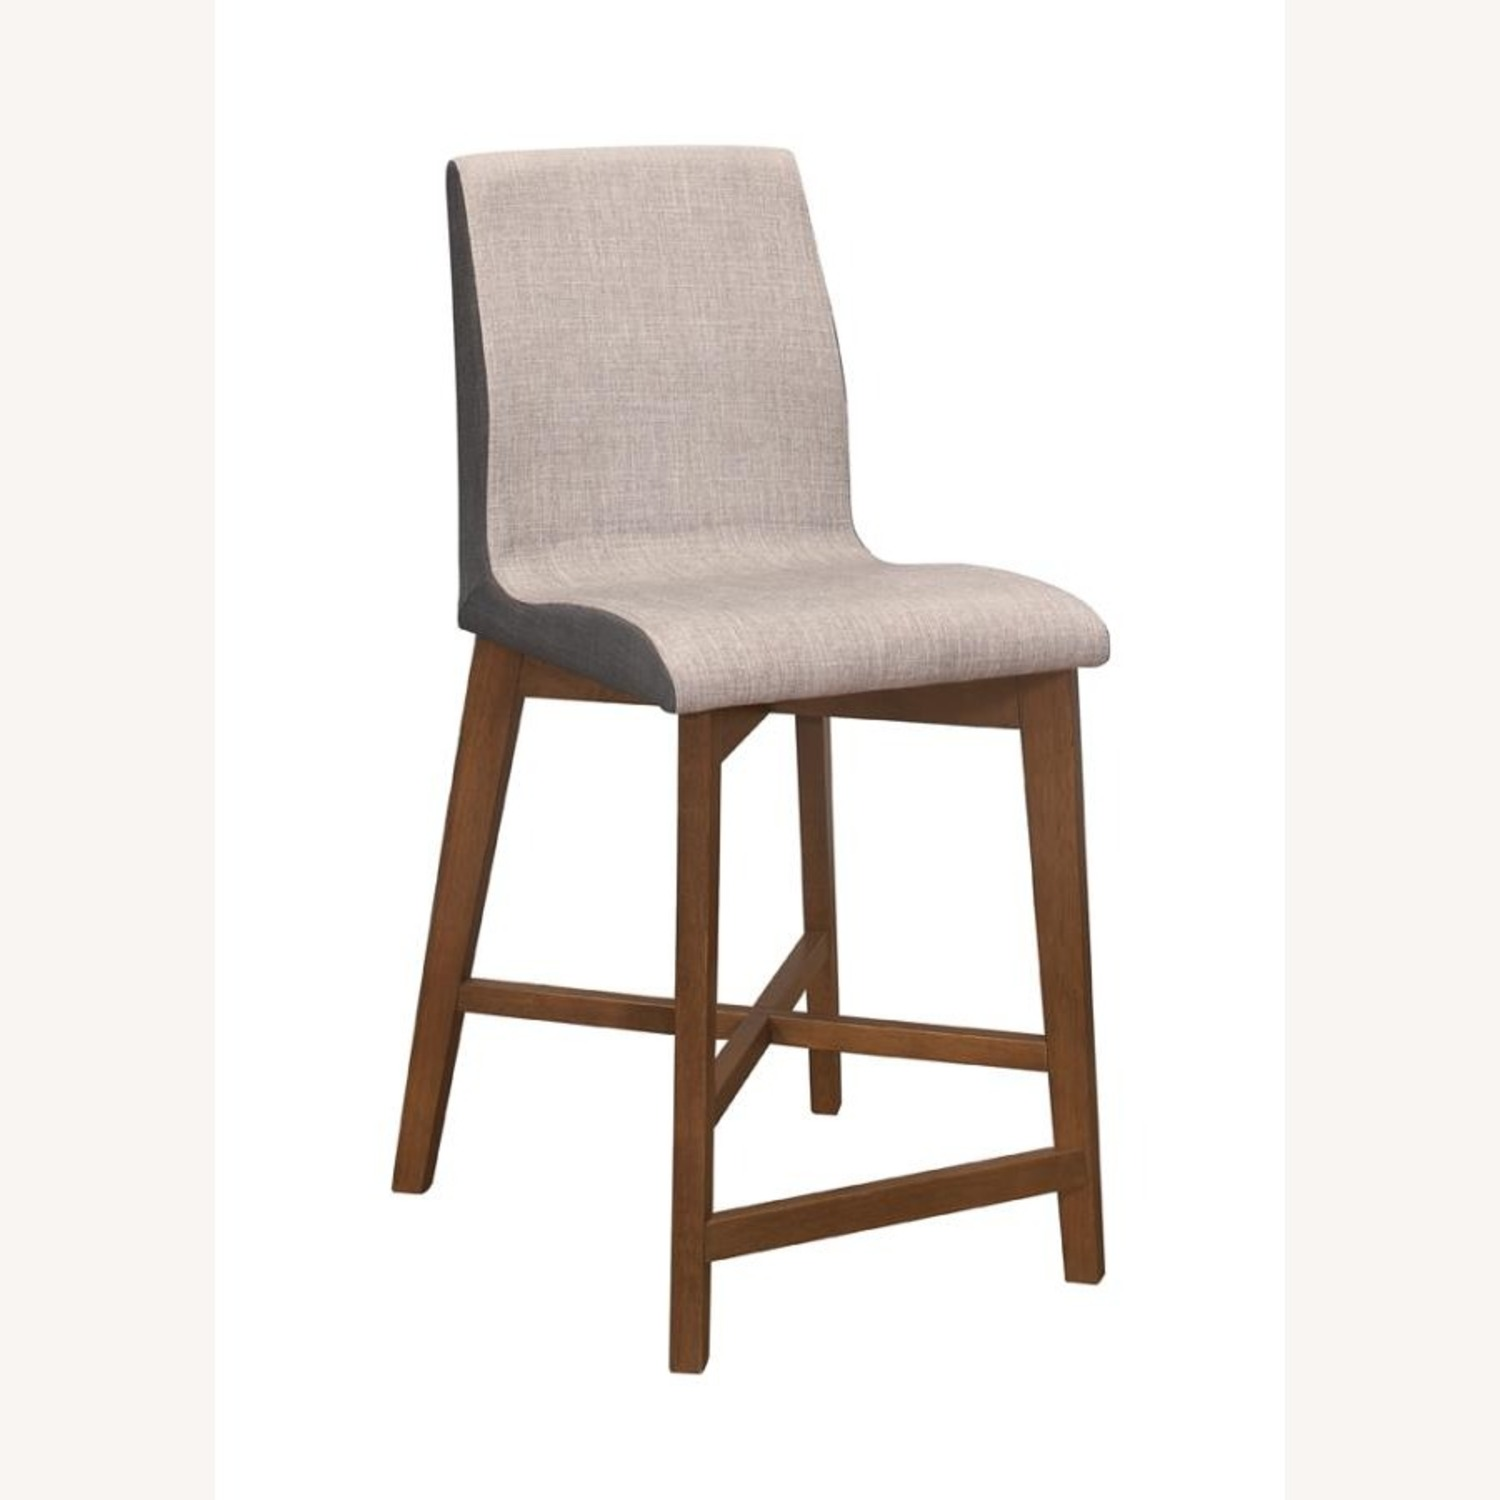 Counter Height Stool In 2-Tone Grey Fabric Finish - image-0